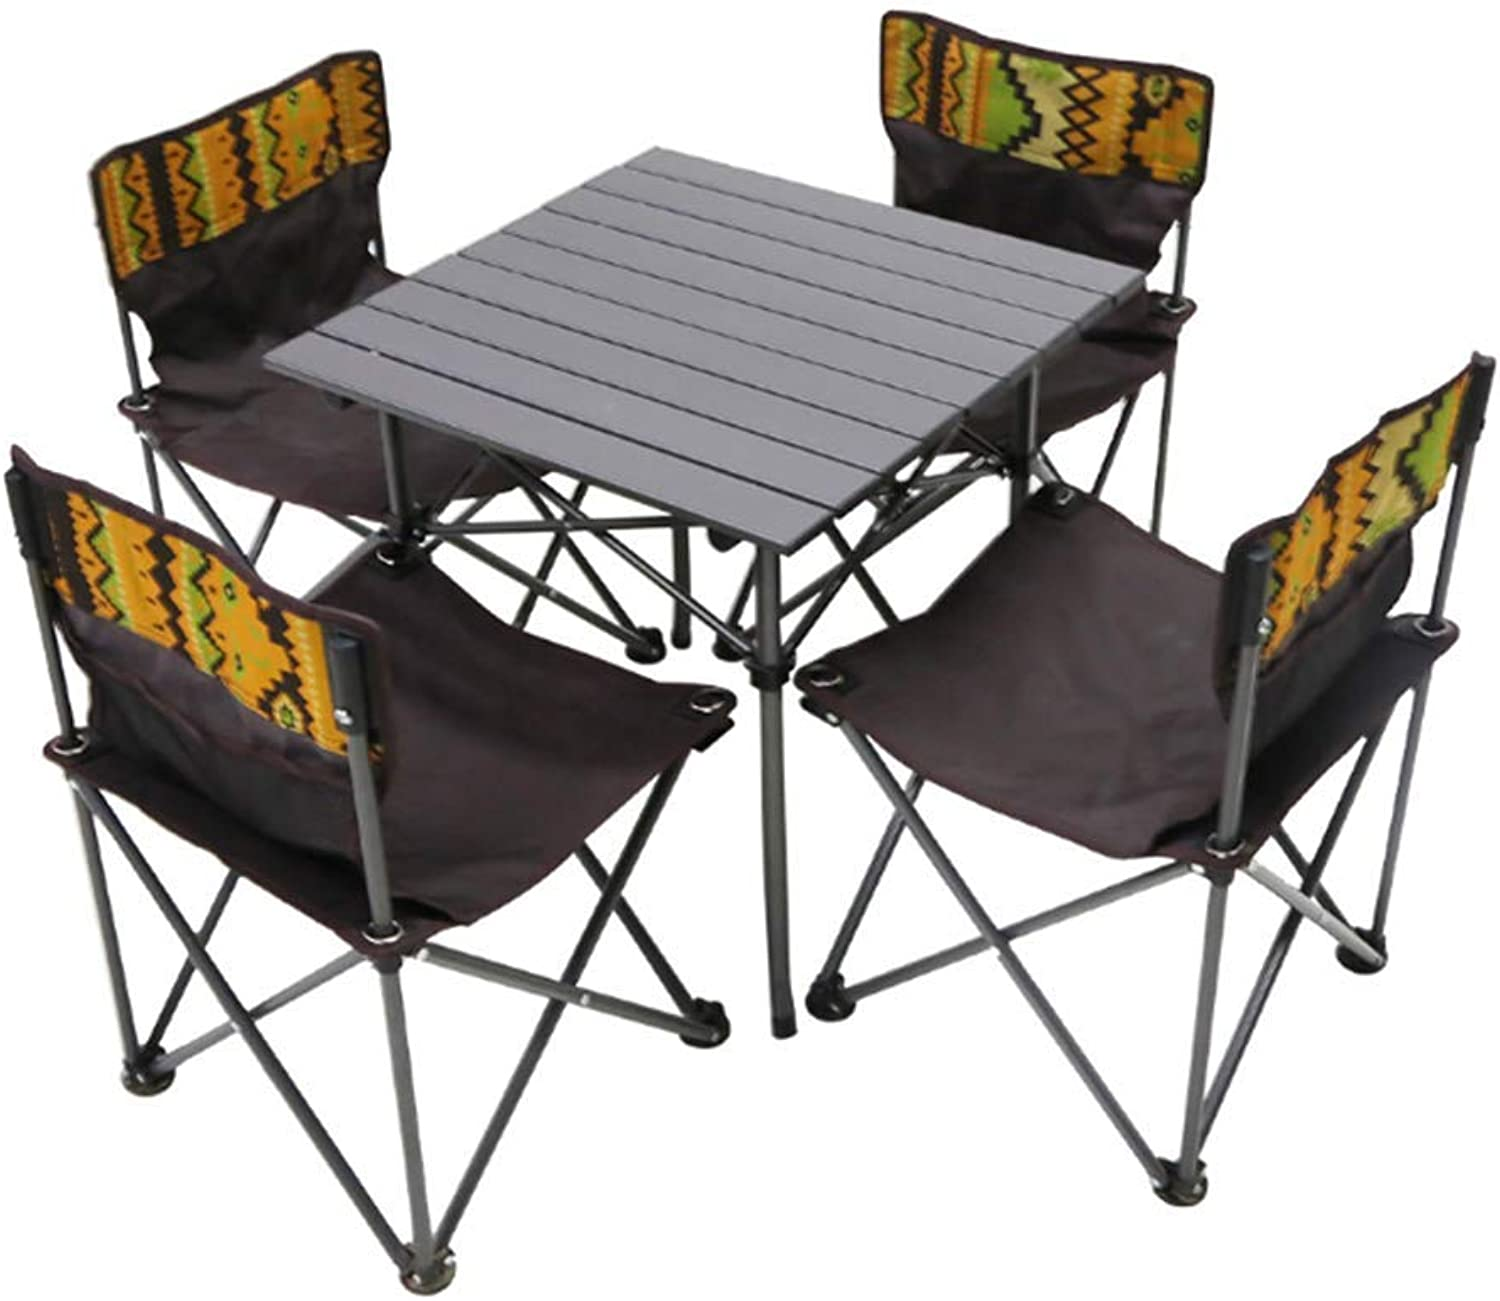 Portable Folding Table and Chair Set Outdoor Camping Beach Dining 5Piece Set Chair Table Desk for Garden Outing Furniture